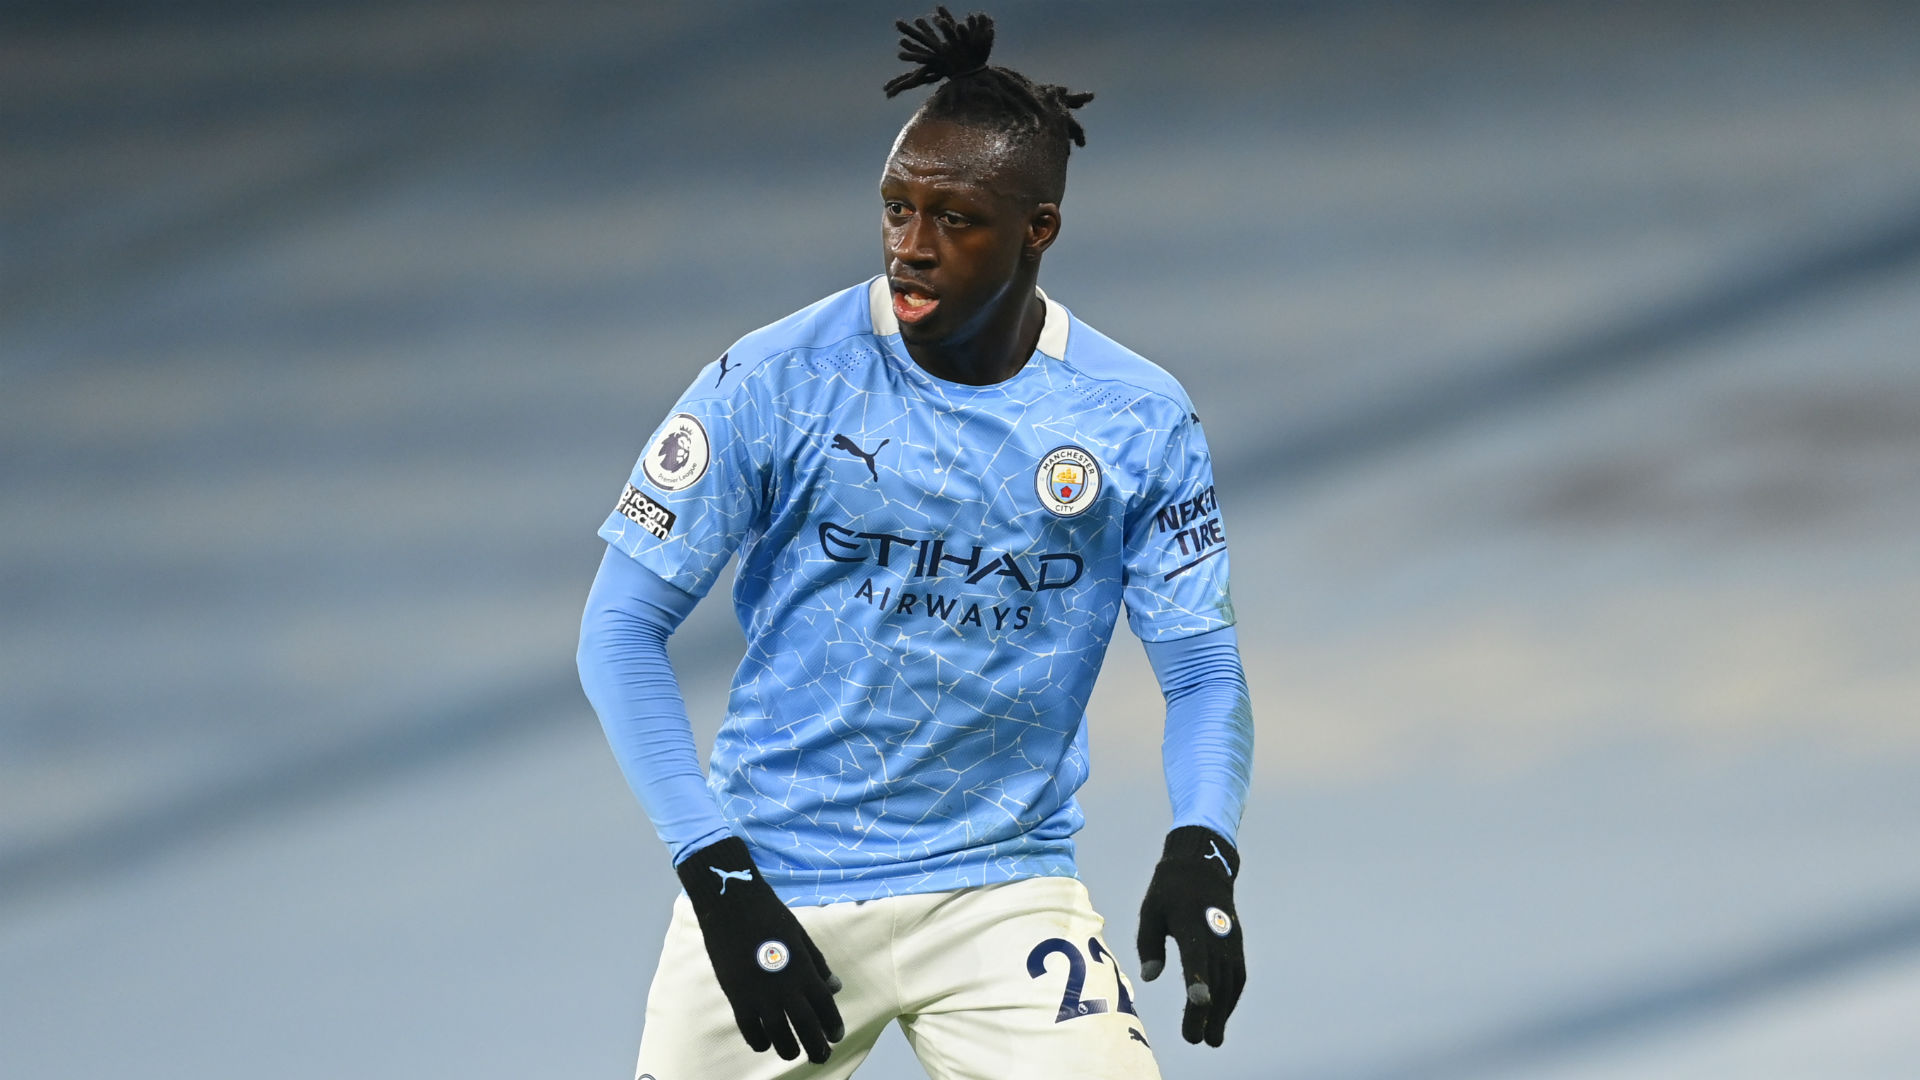 Man City launch investigation after Mendy COVID-19 breach